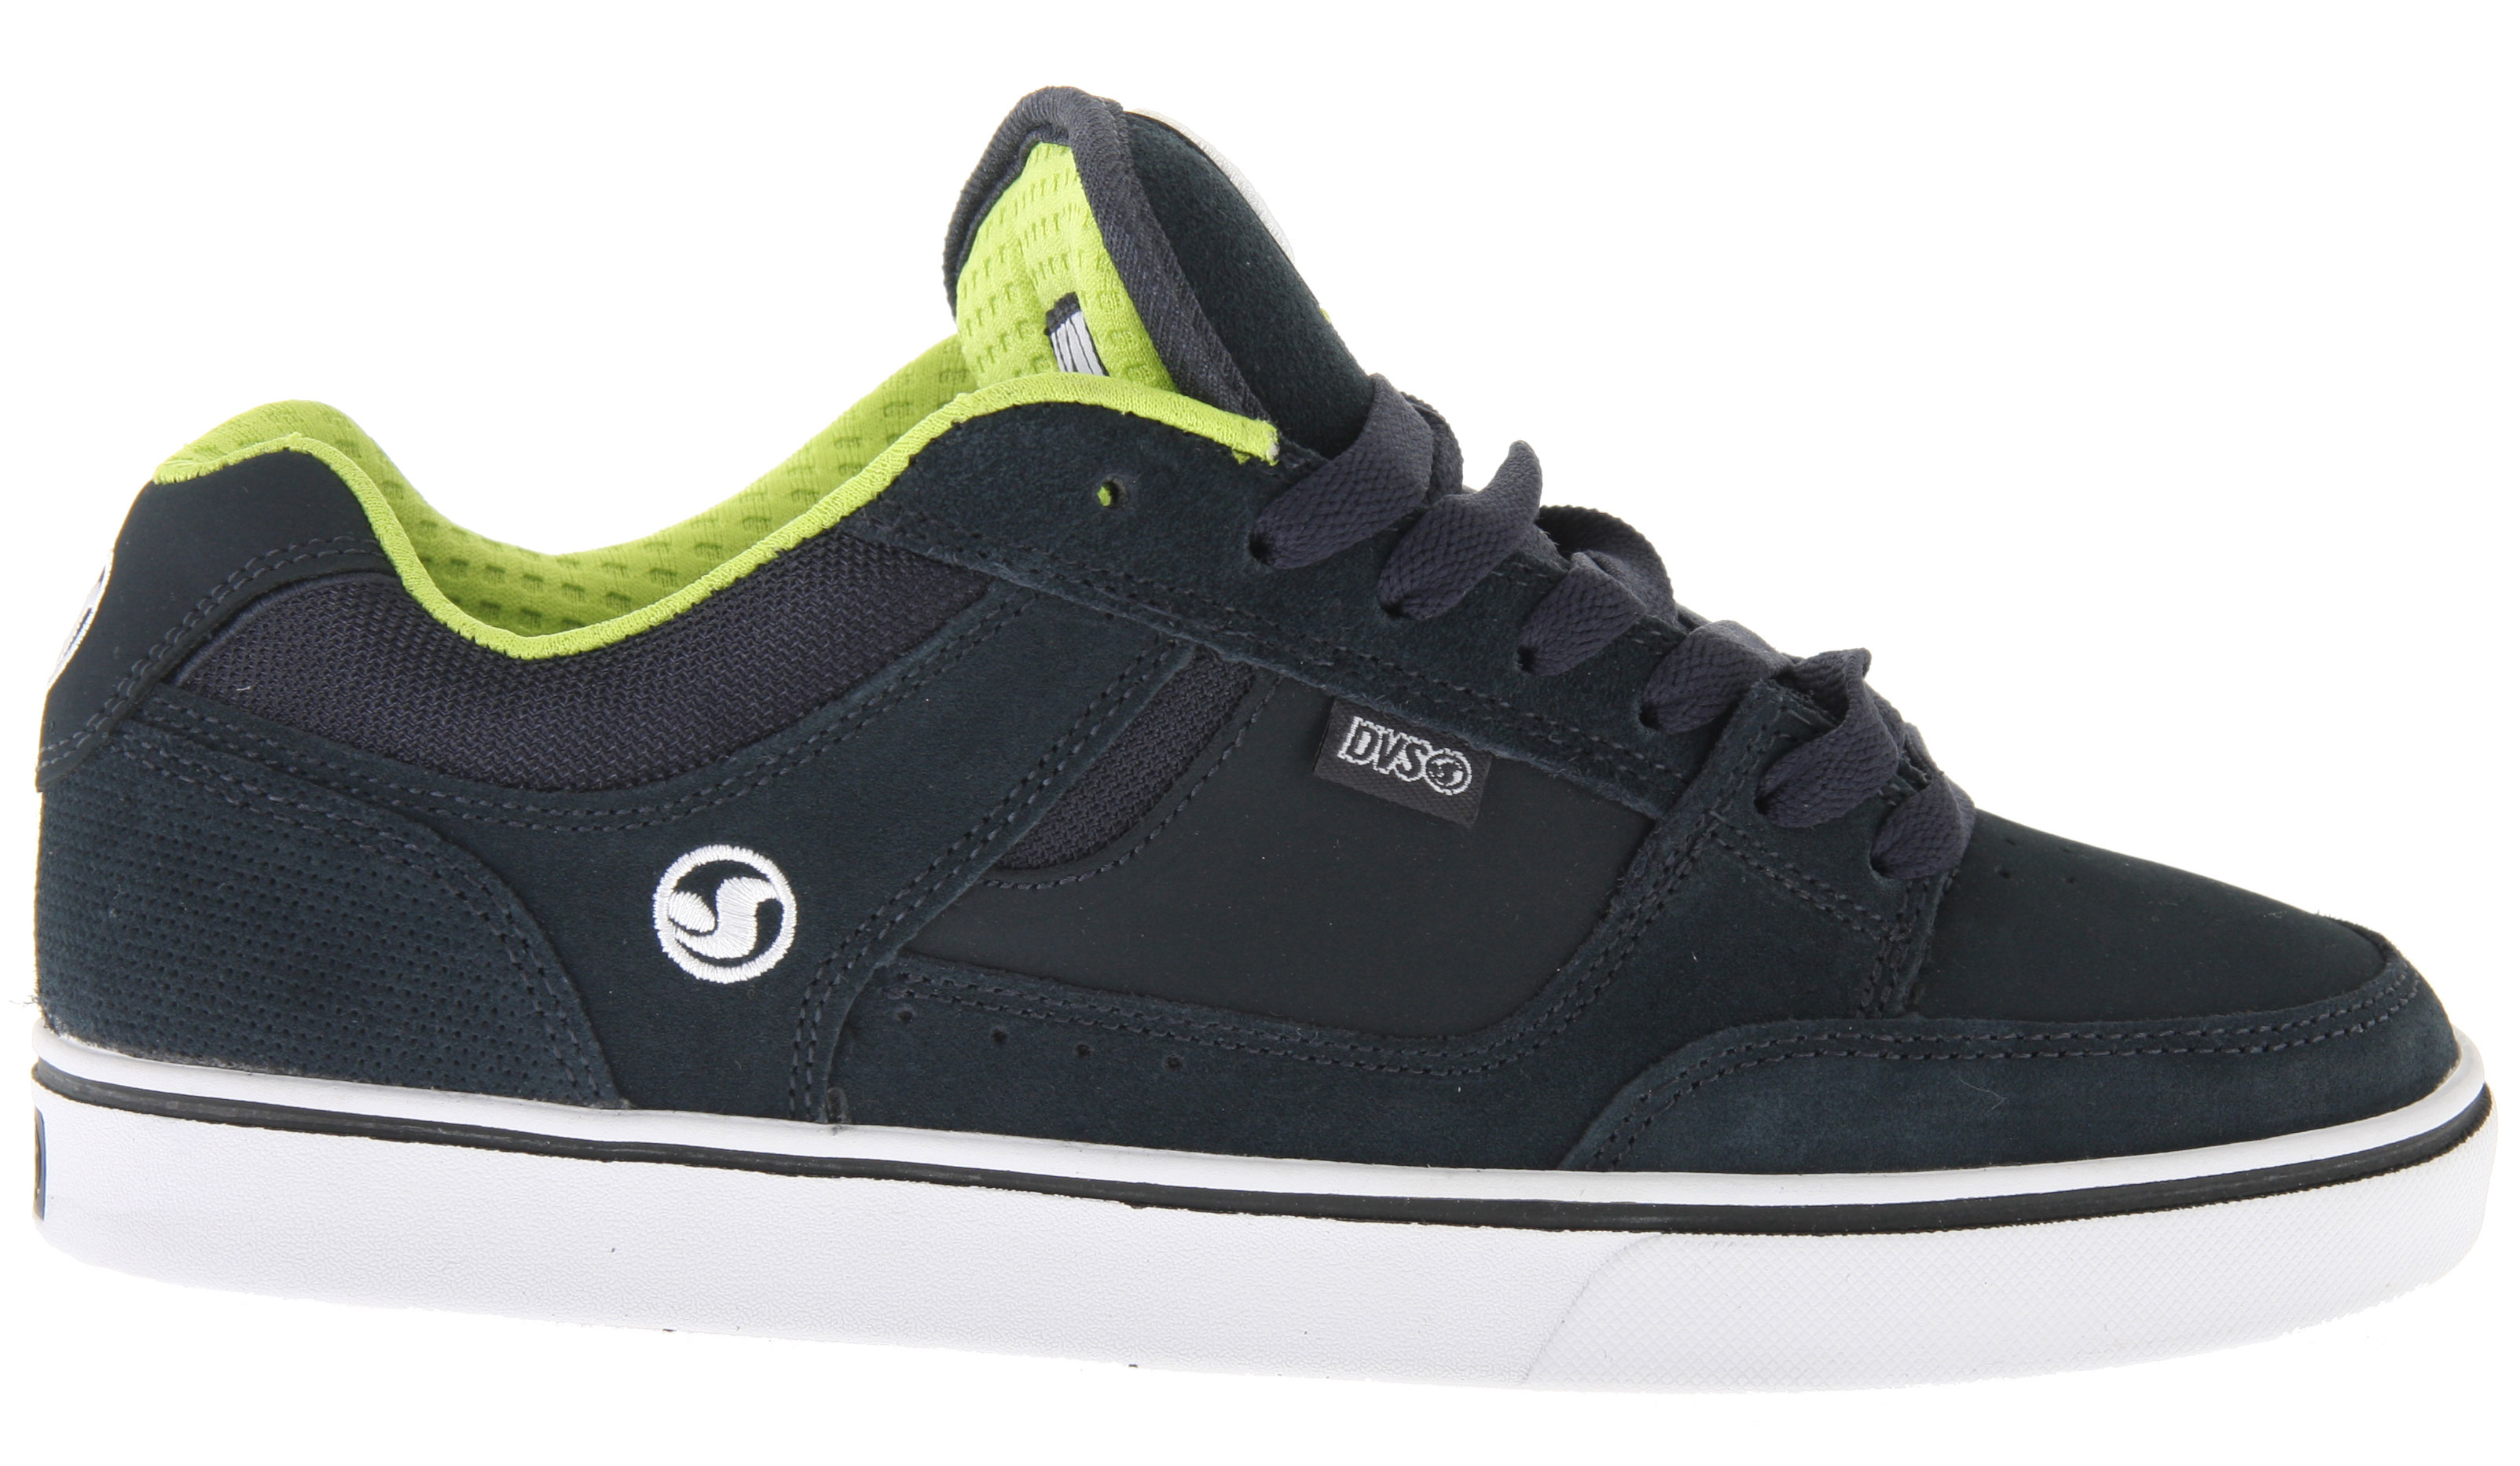 Skateboard Key Features of the DVS Getz5 Skate Shoes: Kerry Getz signature Series Moisture wicking inner lining mesh Super flexible herringbone Bruise Control Technology - $44.95